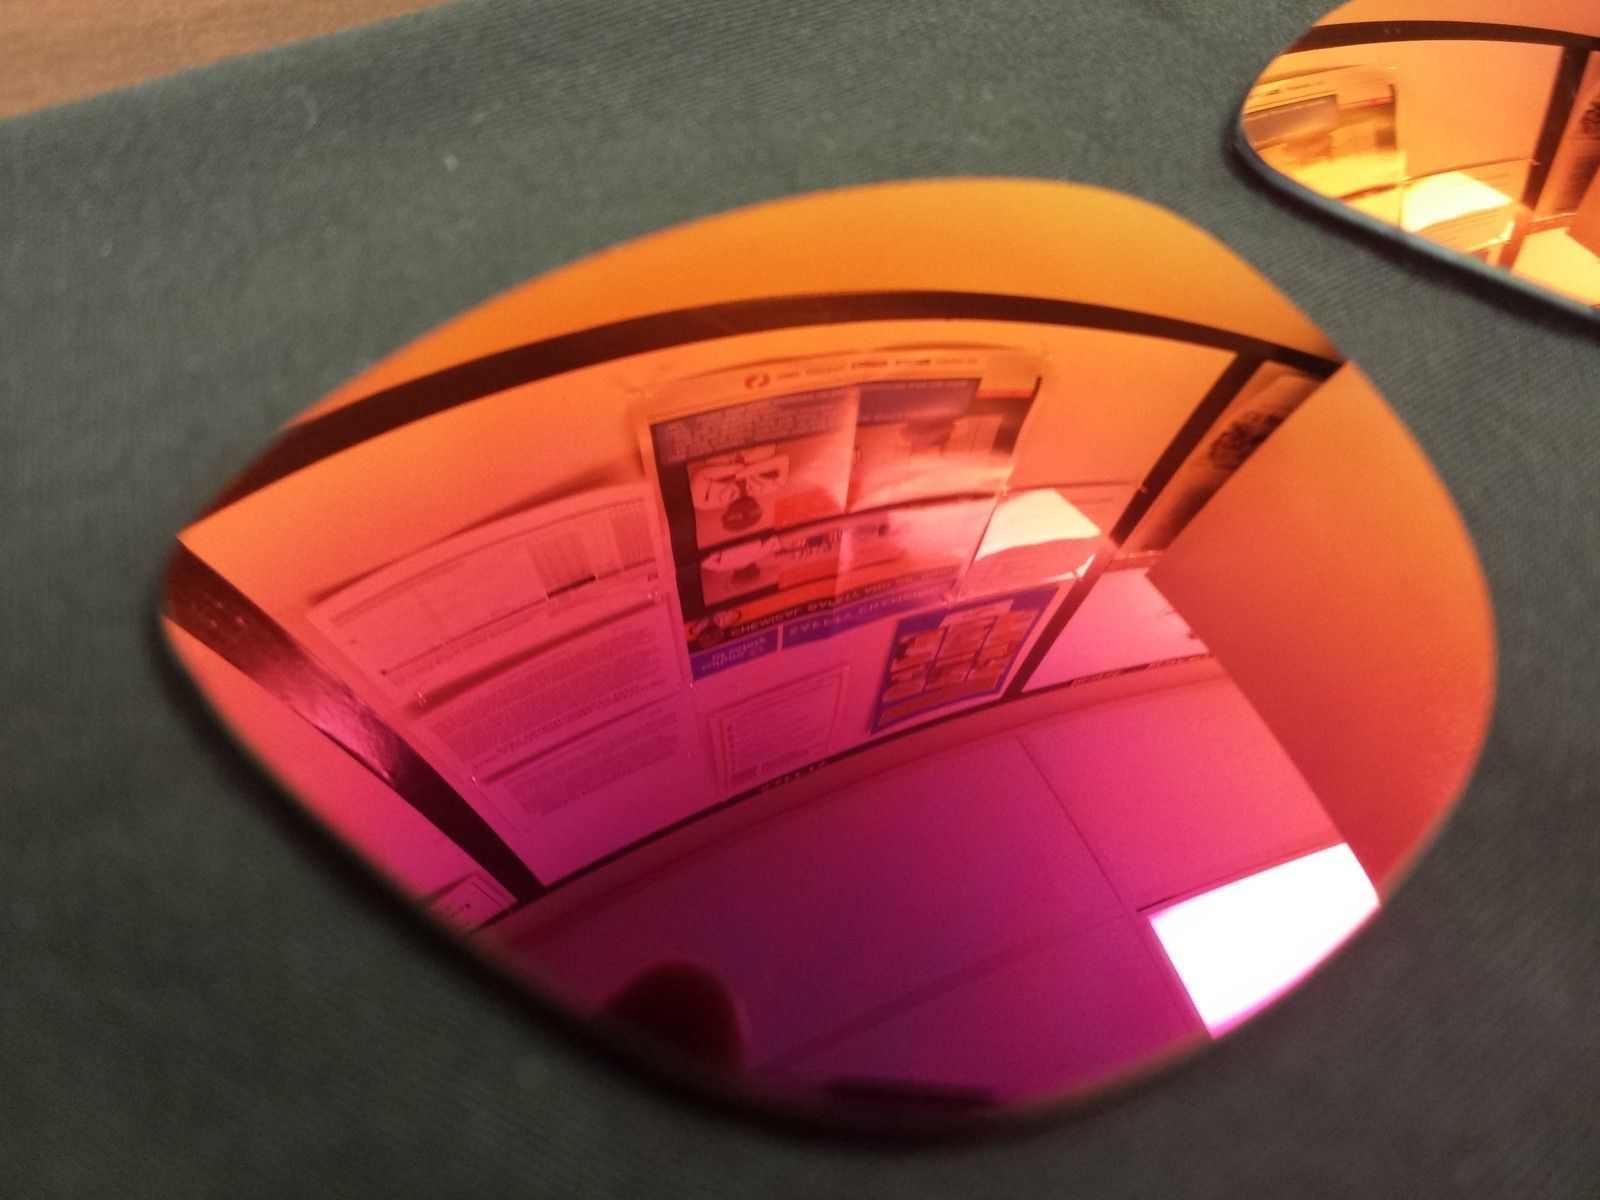 FSOT Ruby Frog Lenses - uploadfromtaptalk1435764692980.jpg